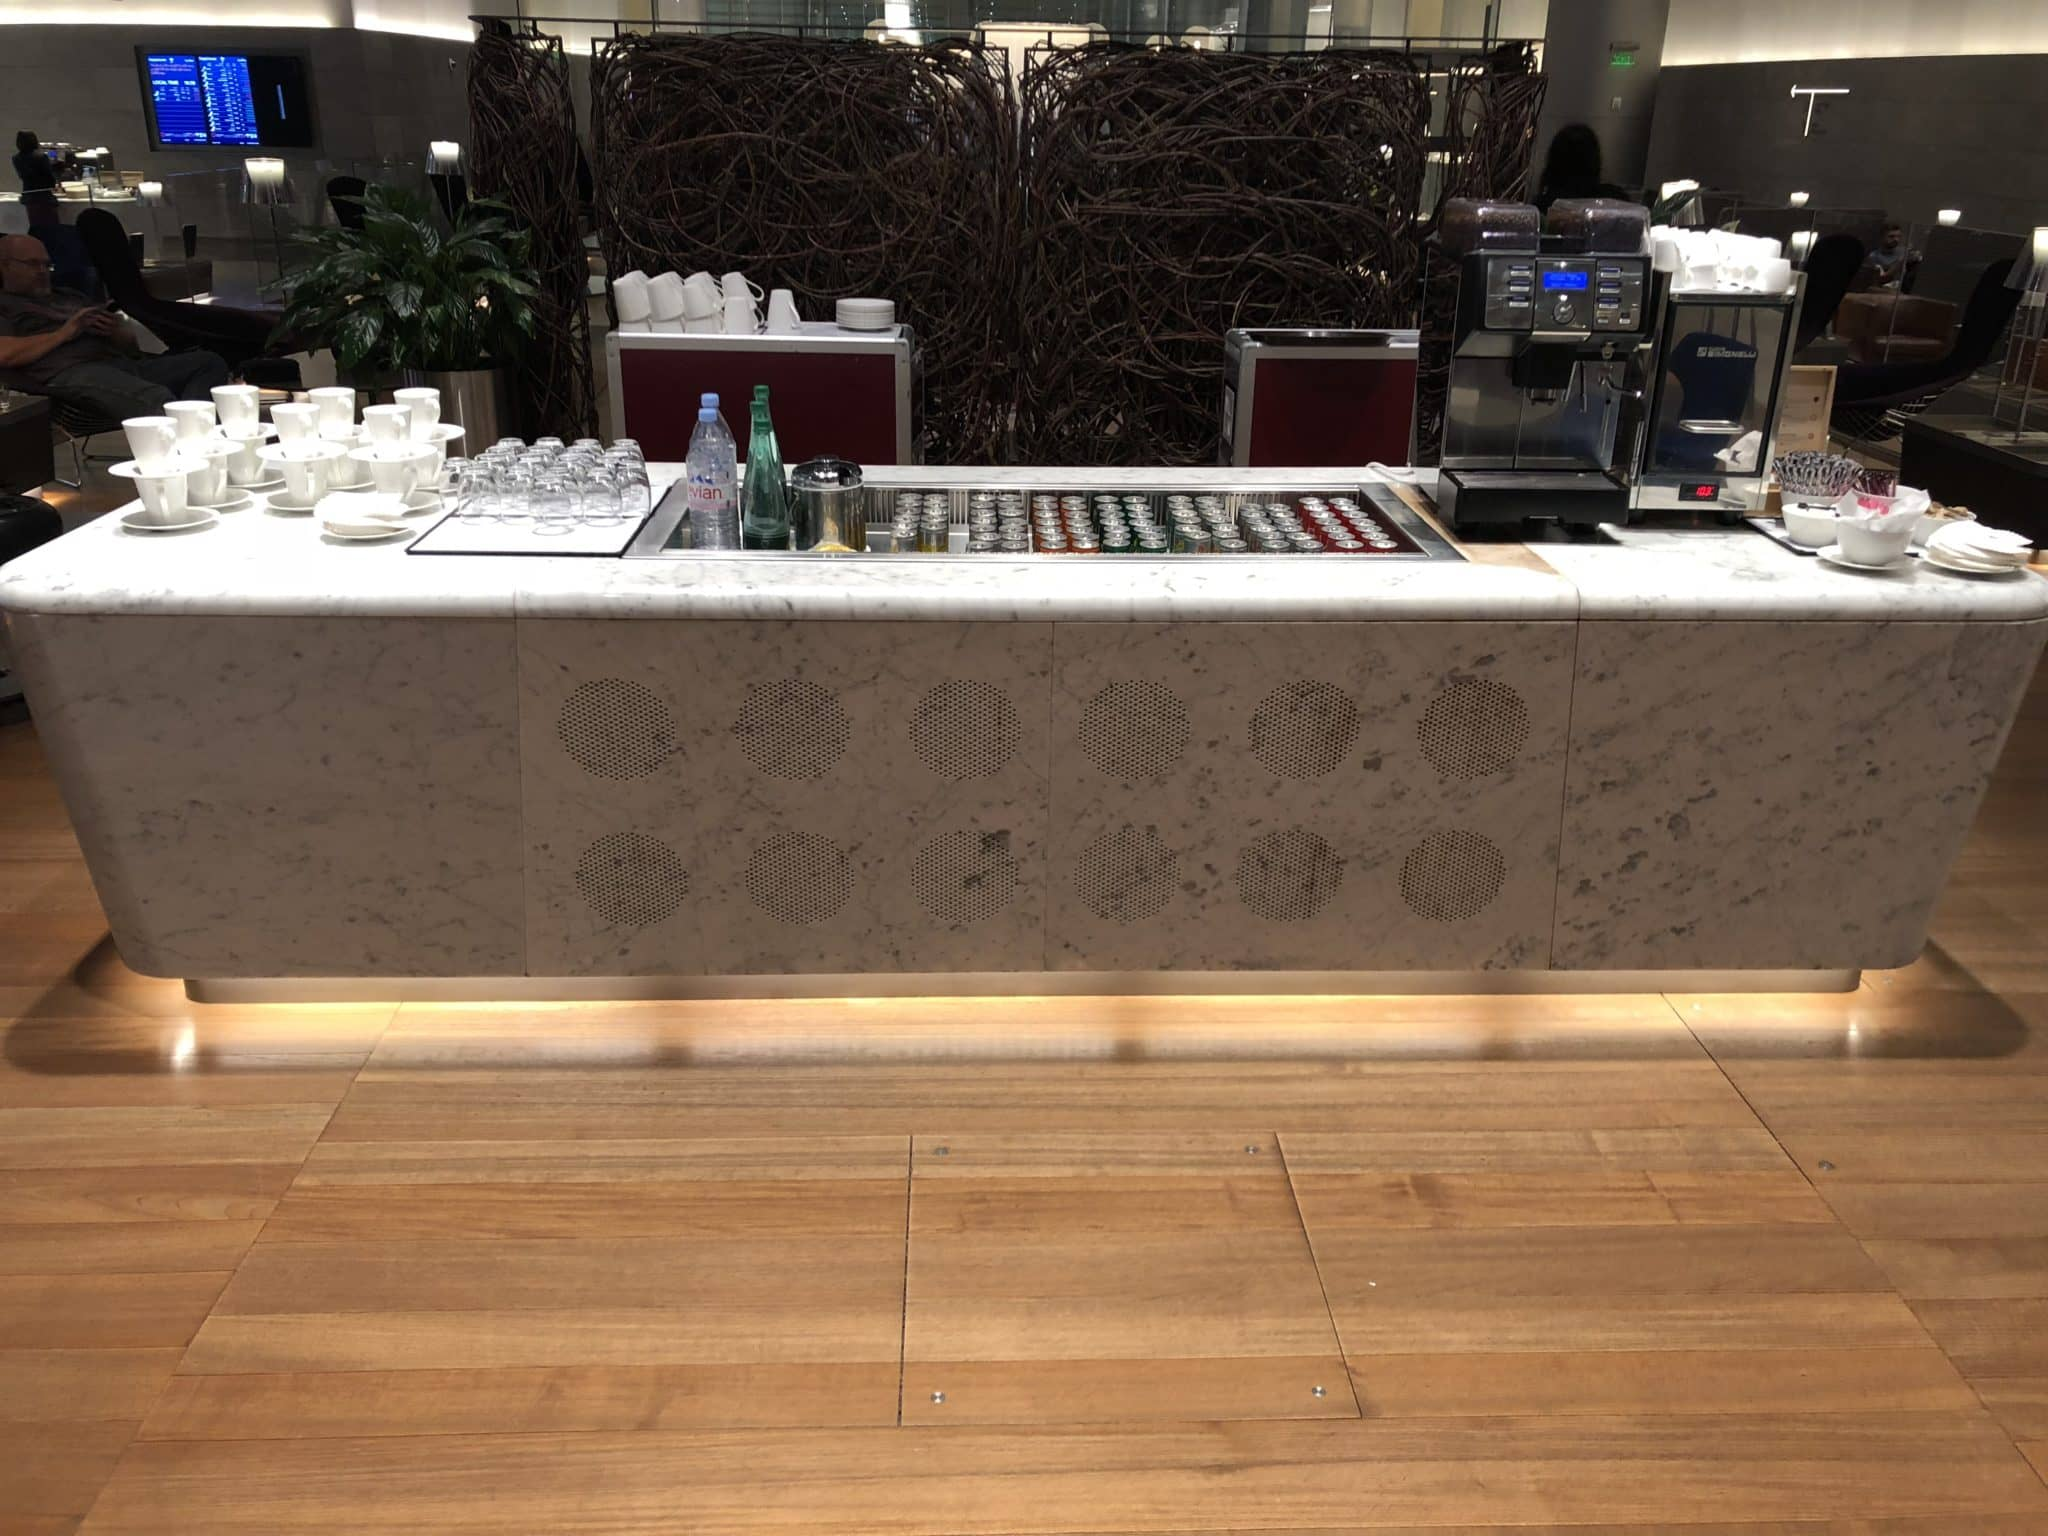 Qatar Airways Al Mourjan Business Class Lounge Getraenketresen innerhalb der Lounge